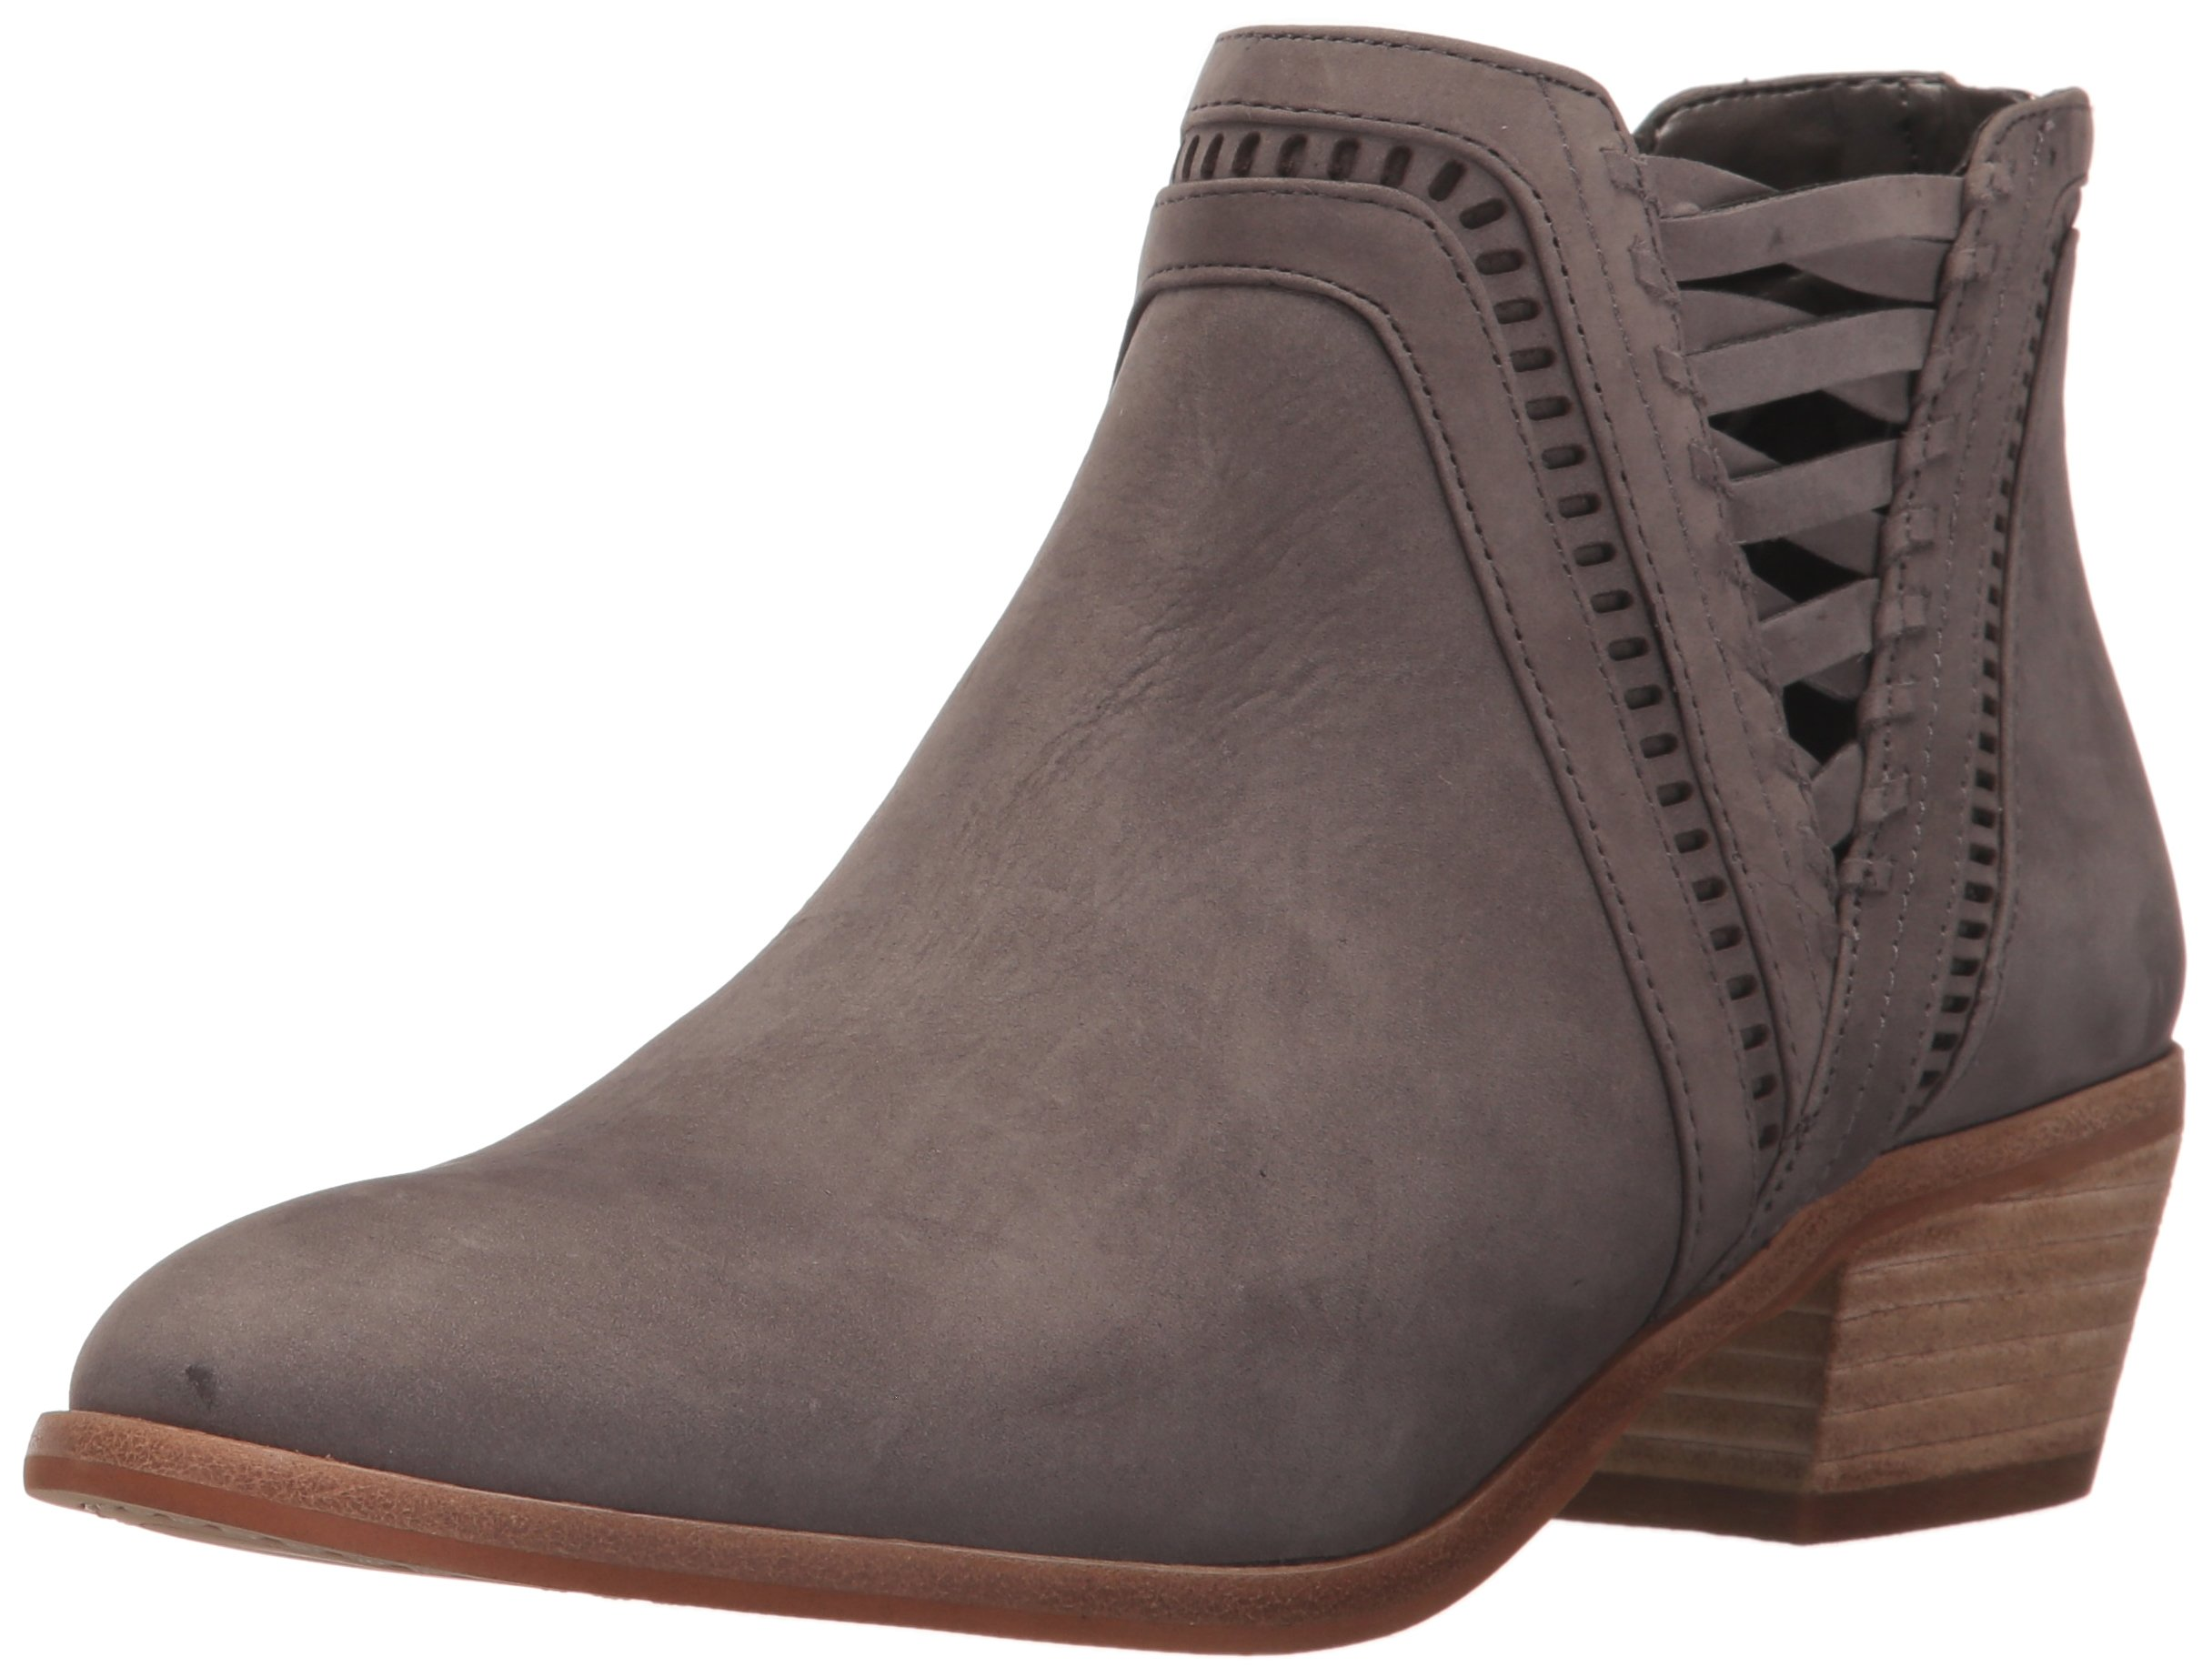 Vince Camuto Women's PIMMY Ankle Boot, Gray Stone, 11 Medium US